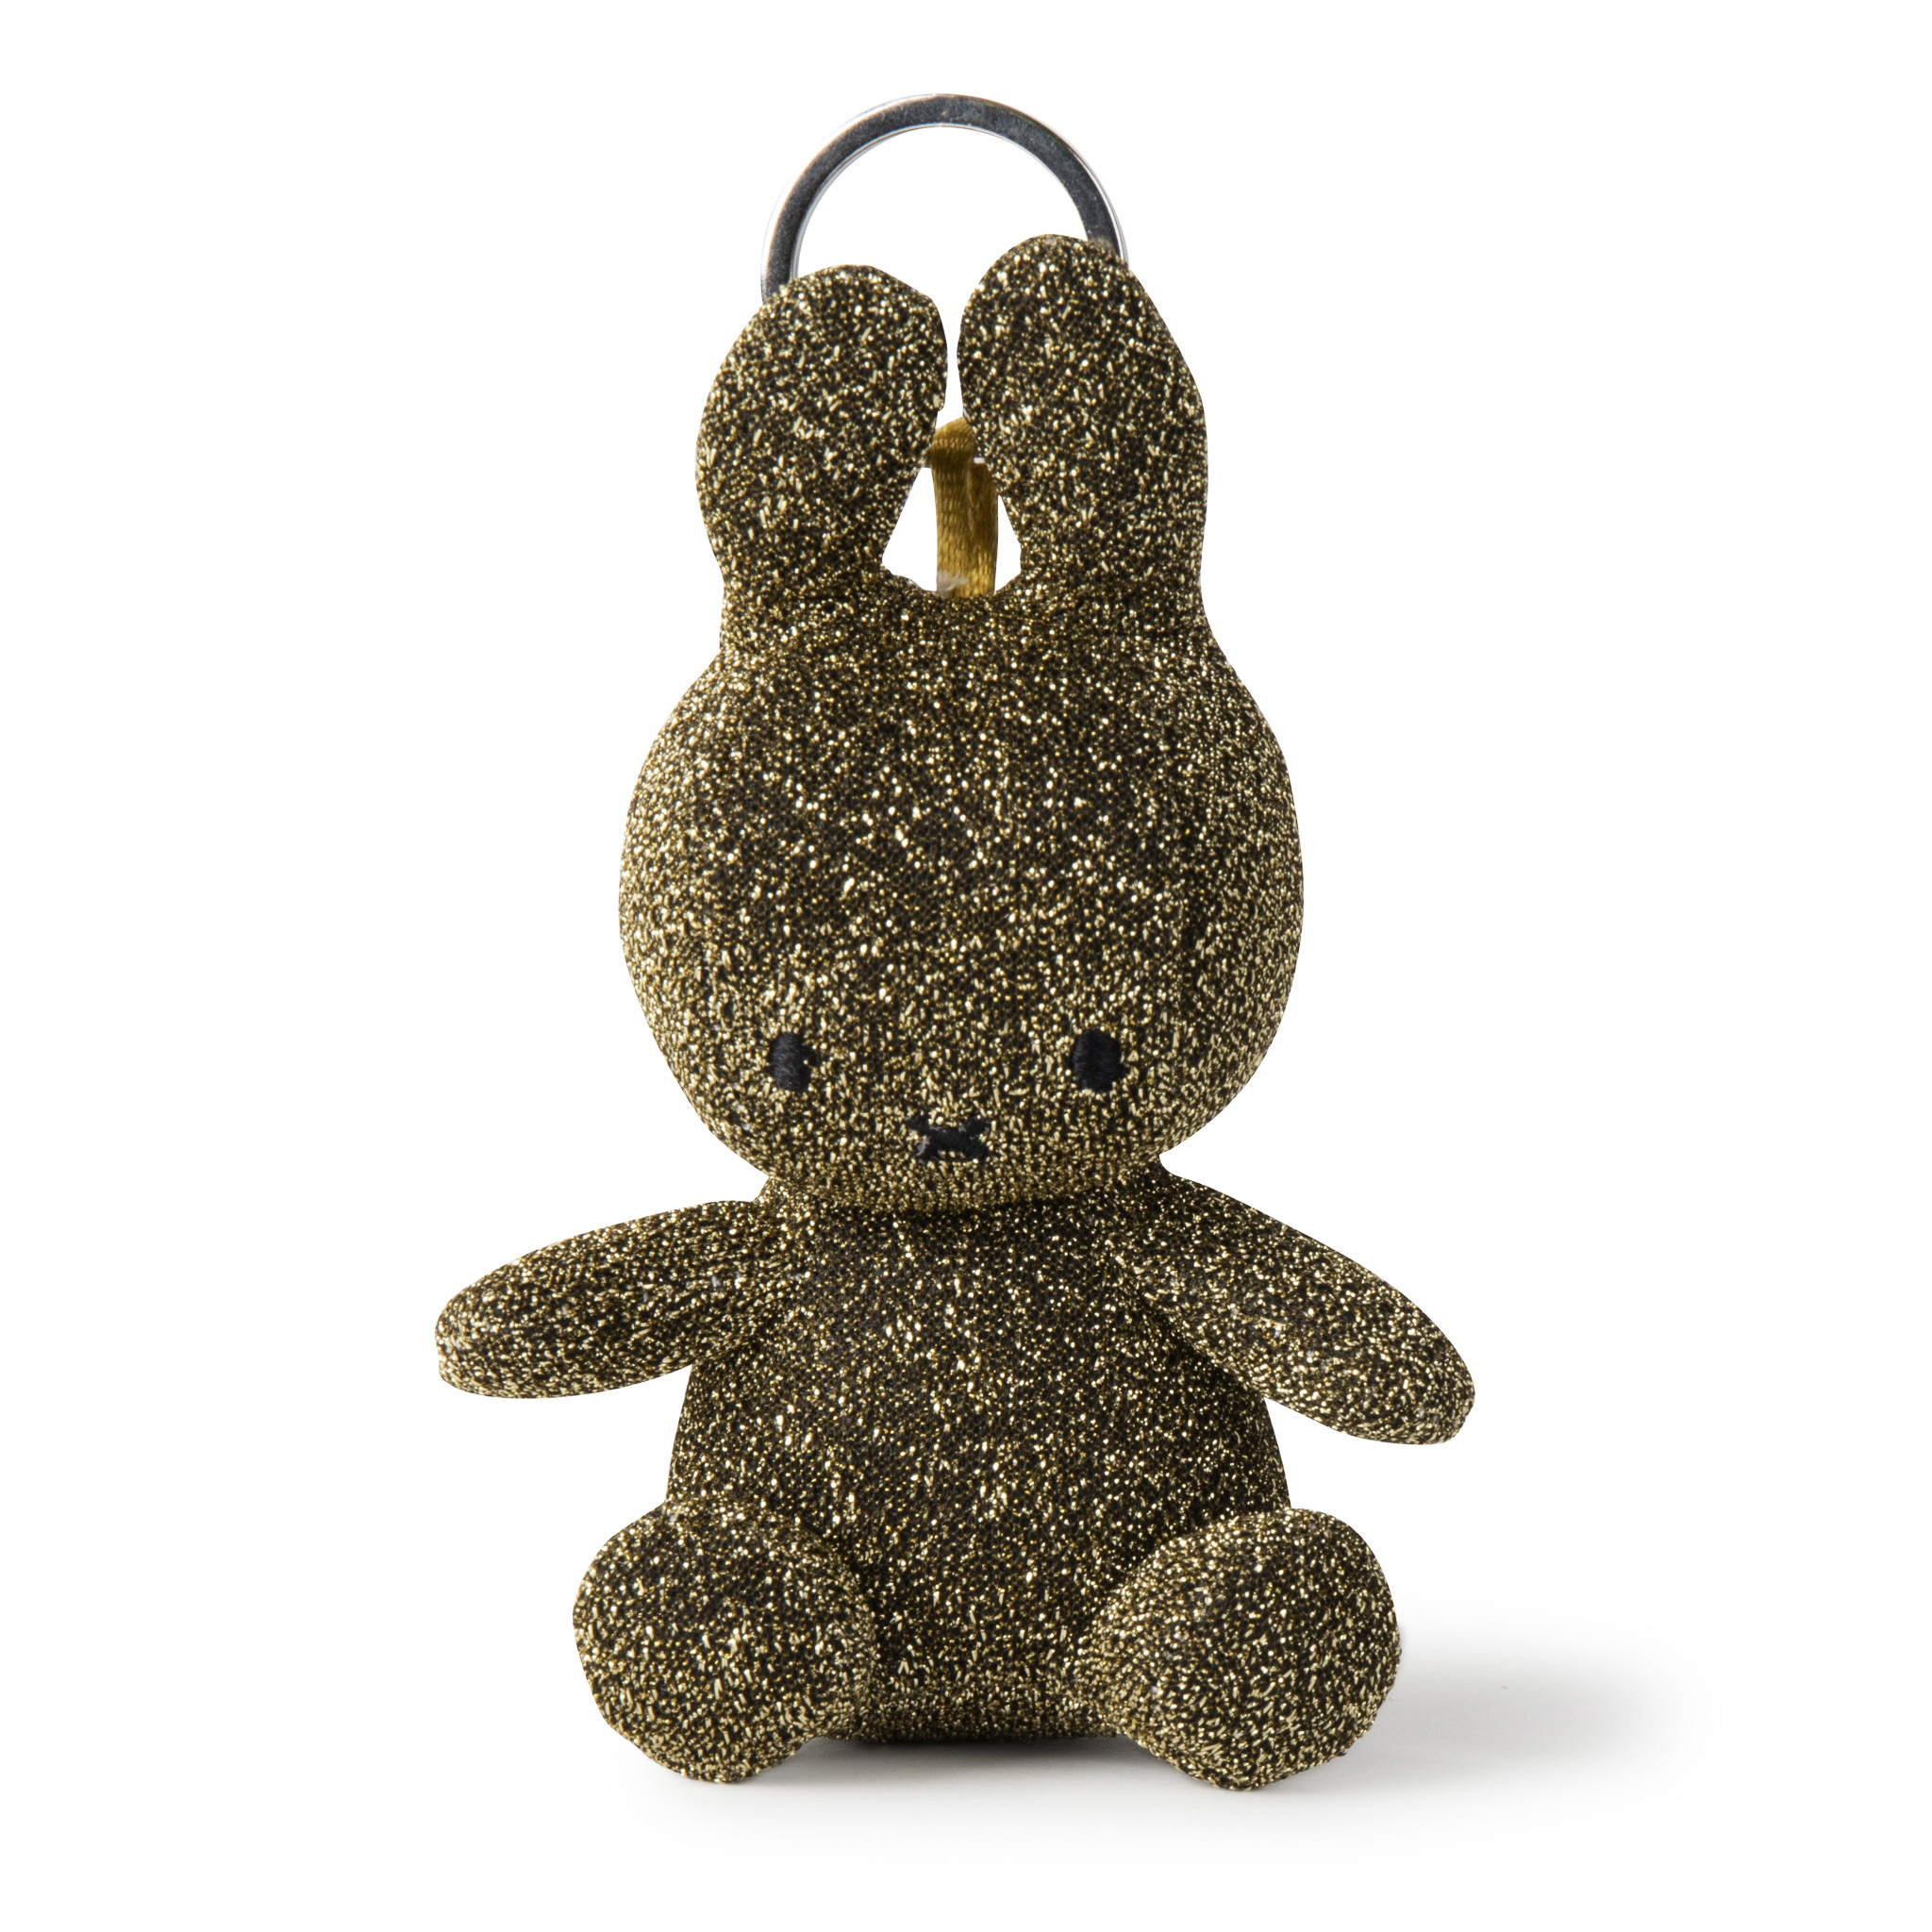 Miffy Keychain Sparkle Gold -10cm Limited Edition